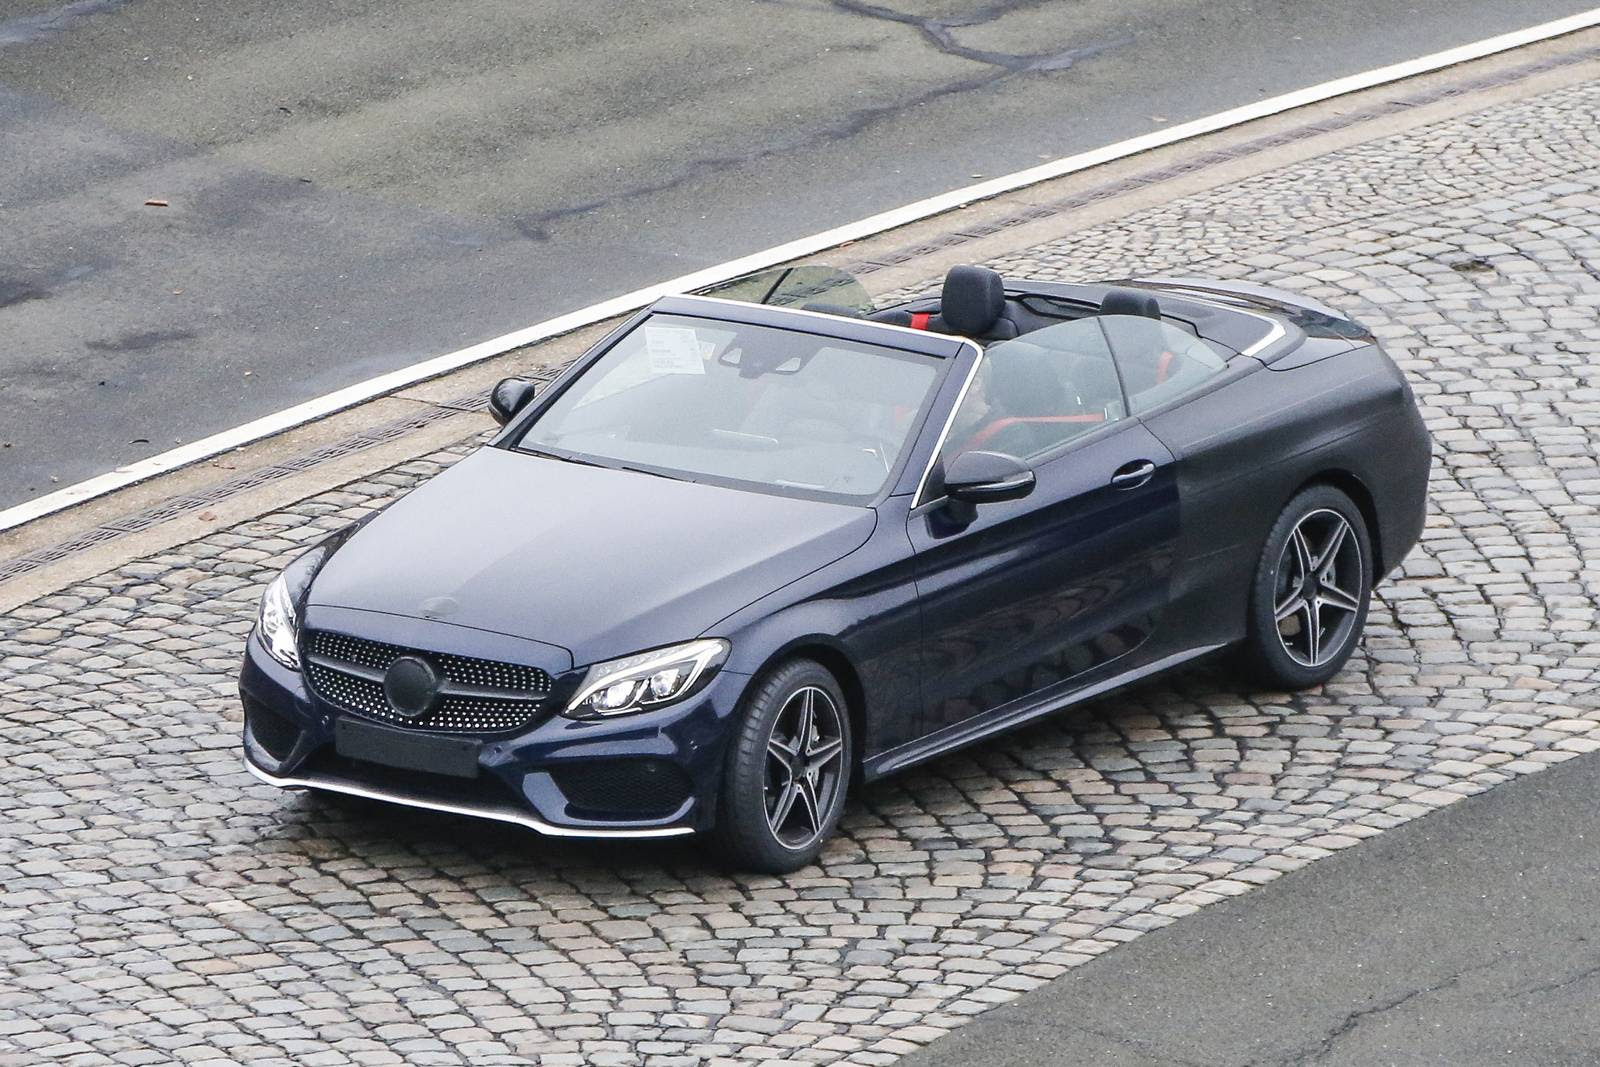 Spy Images From Drop Top 2017 New Mercedes C Class Prototype!